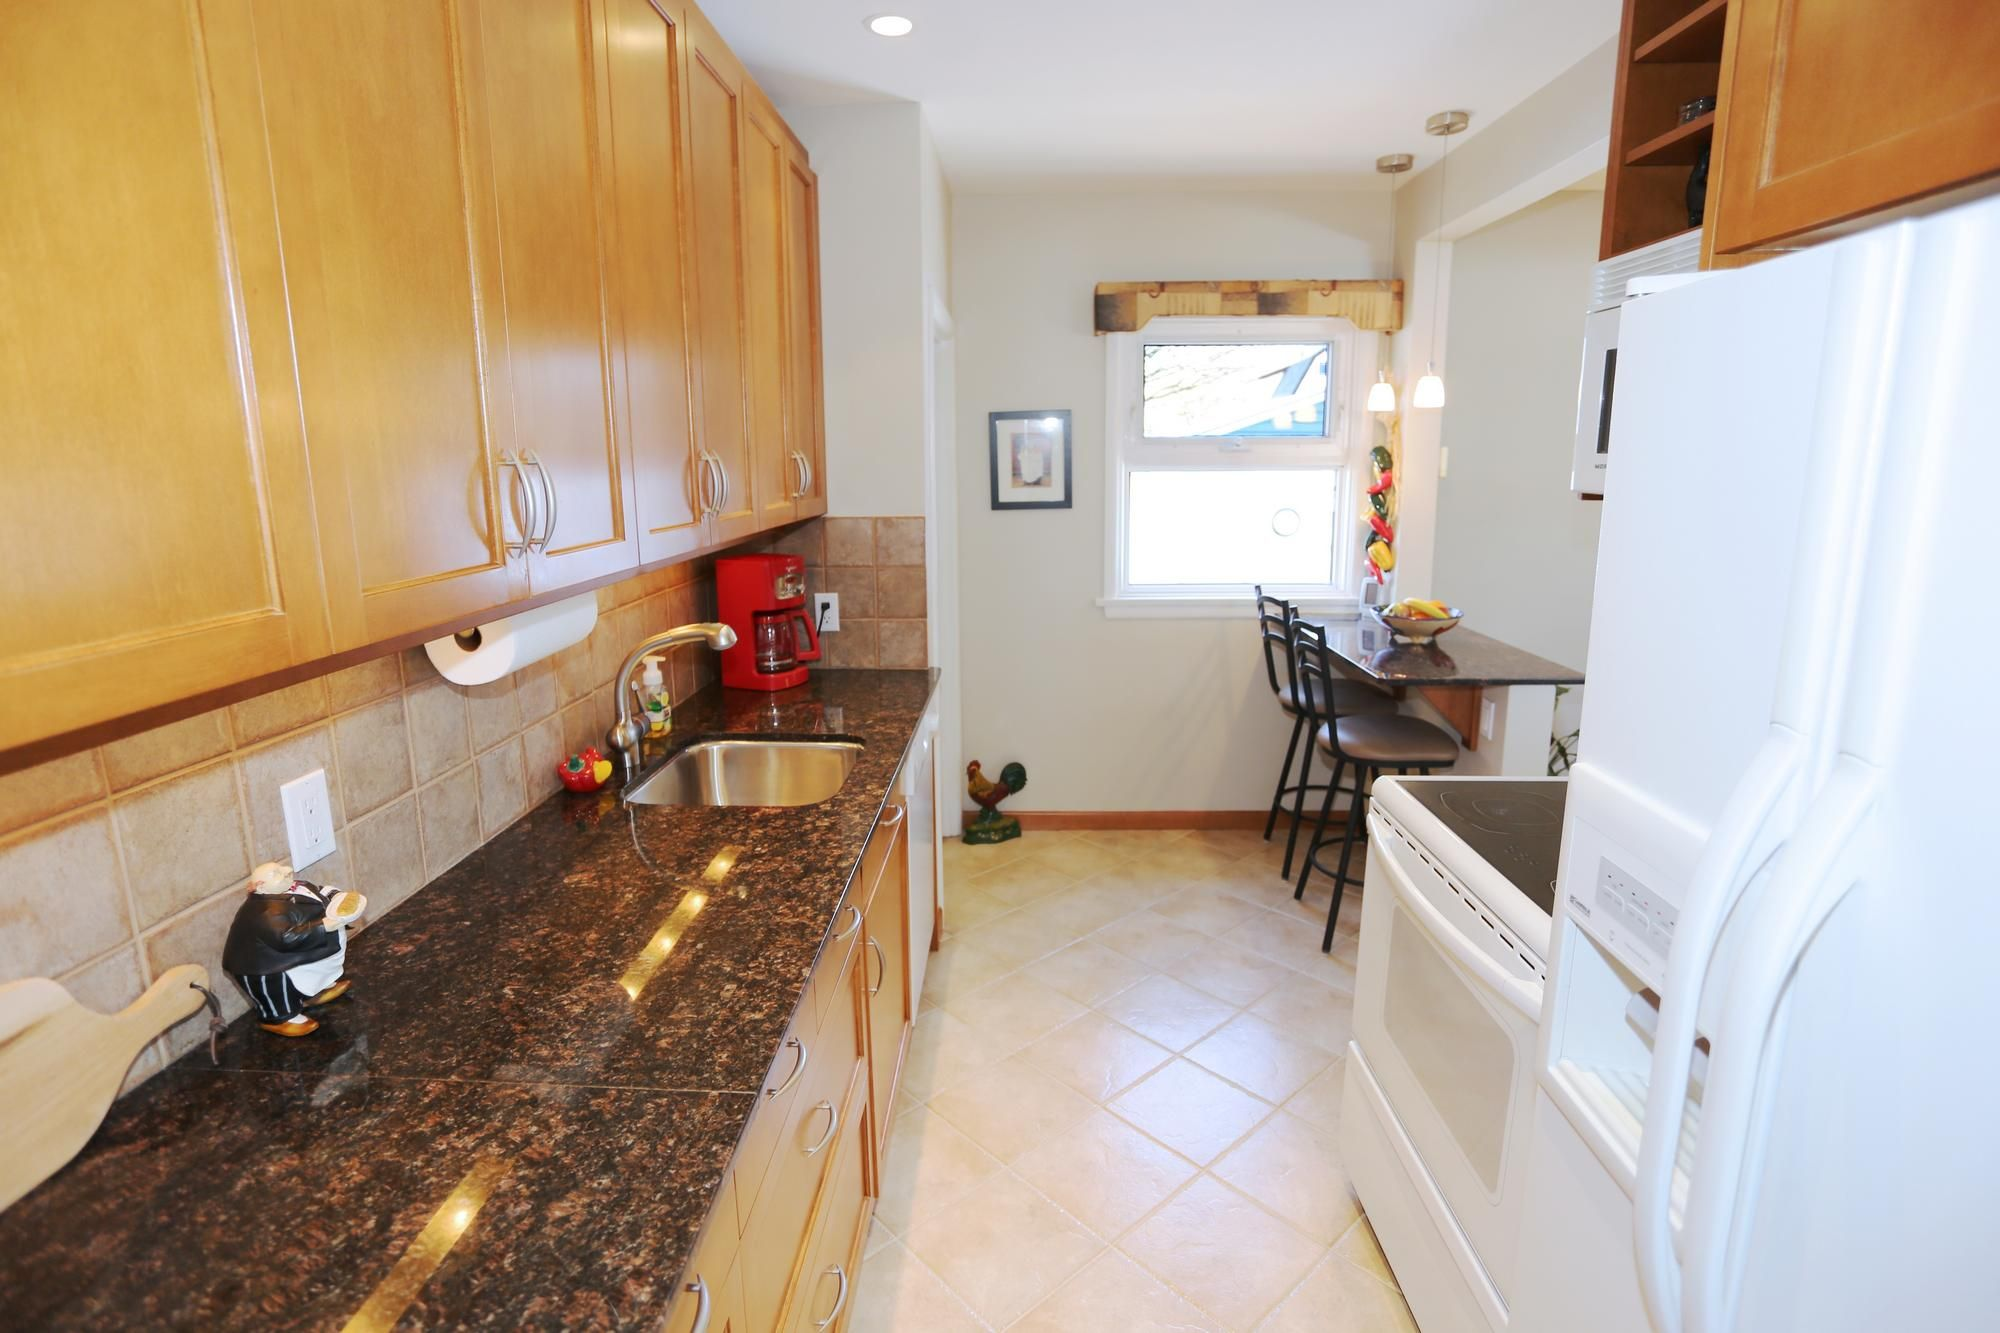 Photo 11: Photos: 349 Guildford Street in Winnipeg: St James Single Family Detached for sale (5E)  : MLS®# 1807654